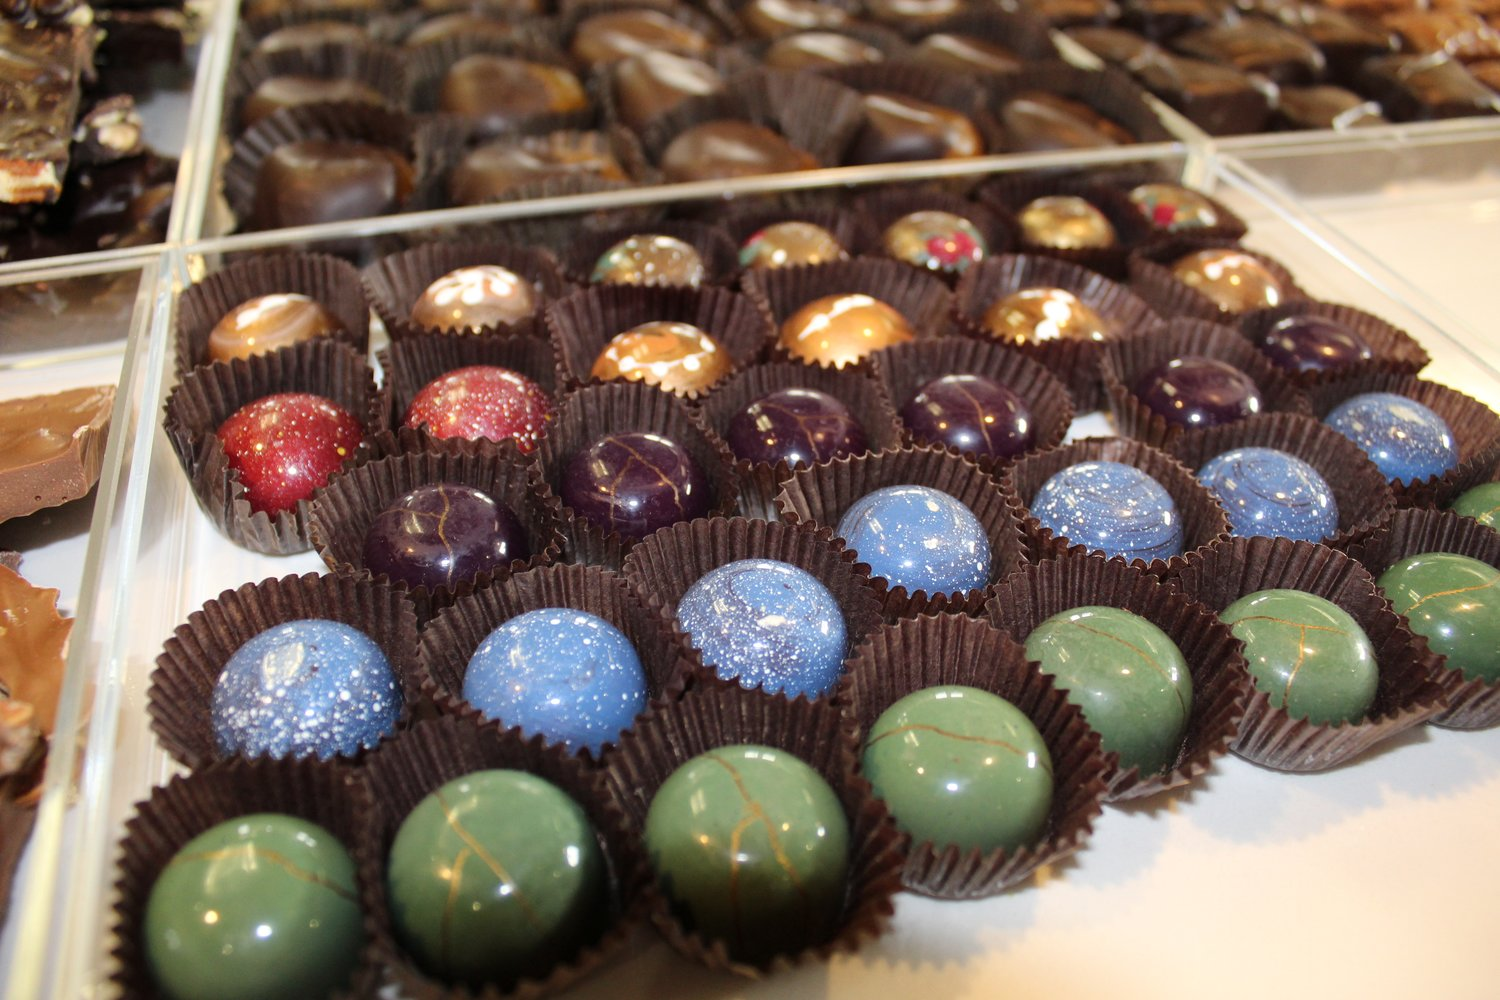 Chocolatier Kristi Wilson's hand-painted truffles are crafted from West African cocoa beans.